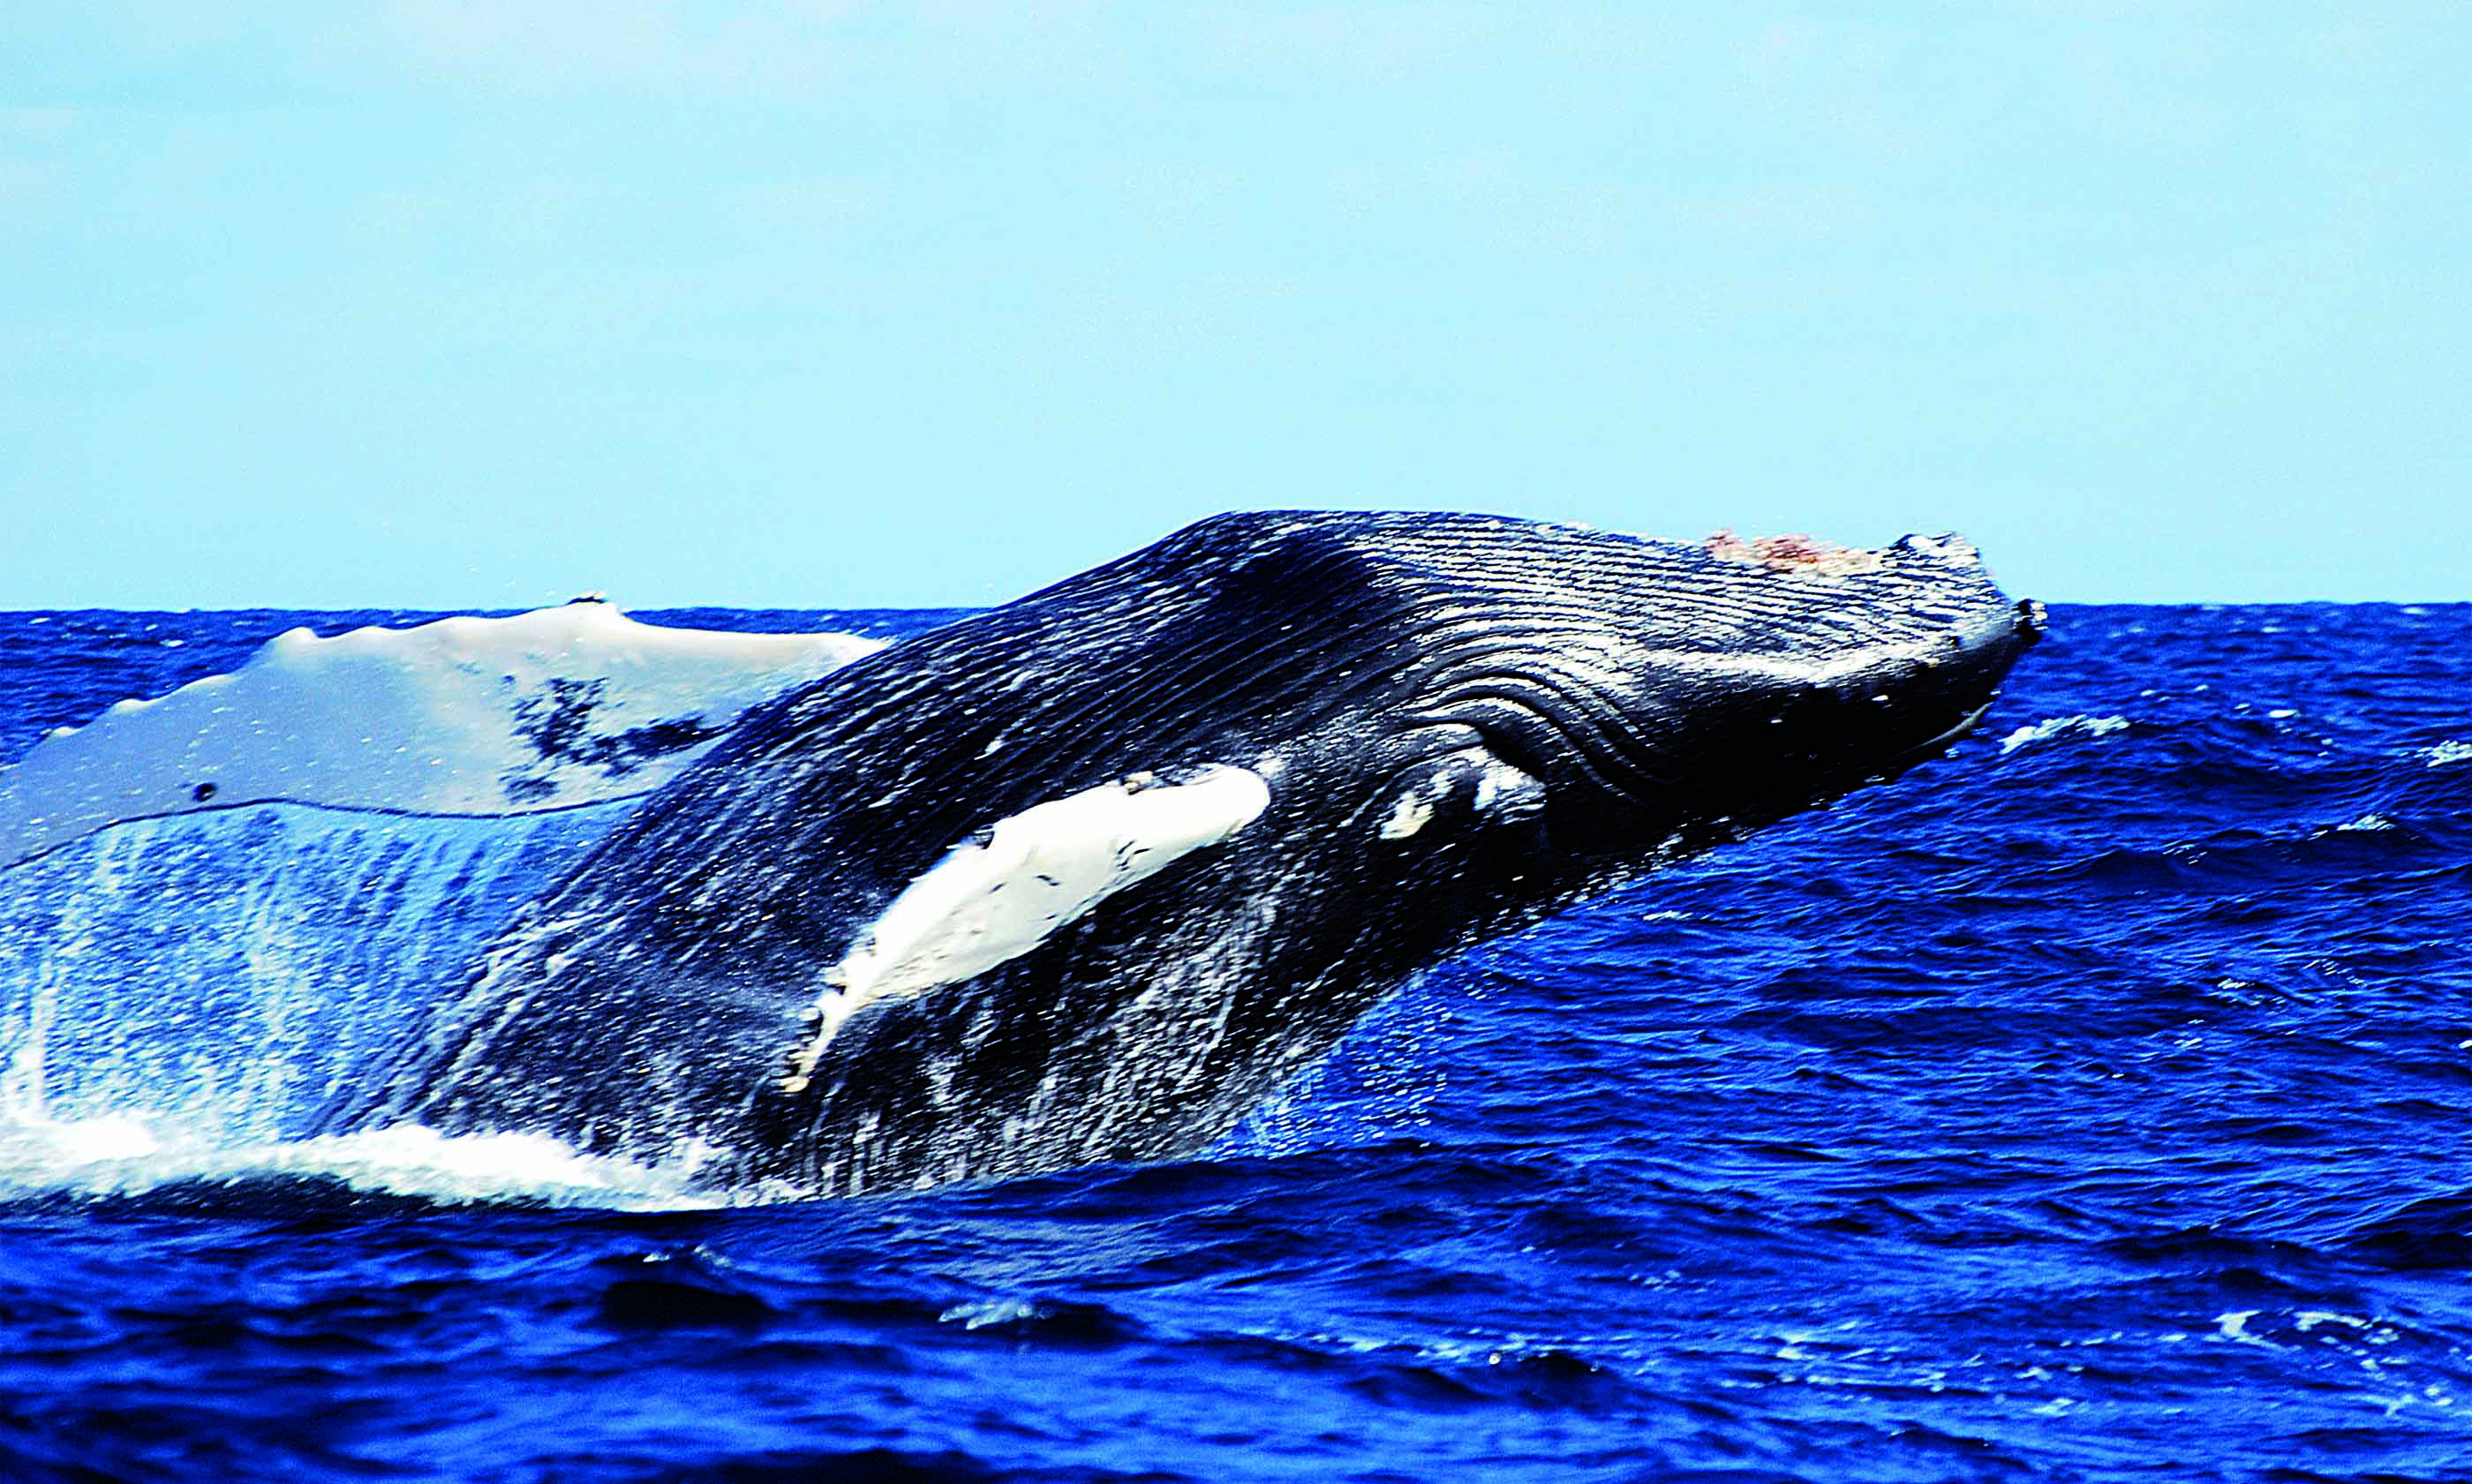 whale watching4 credit futurismo azores adventure - Top 15 whale watching trips